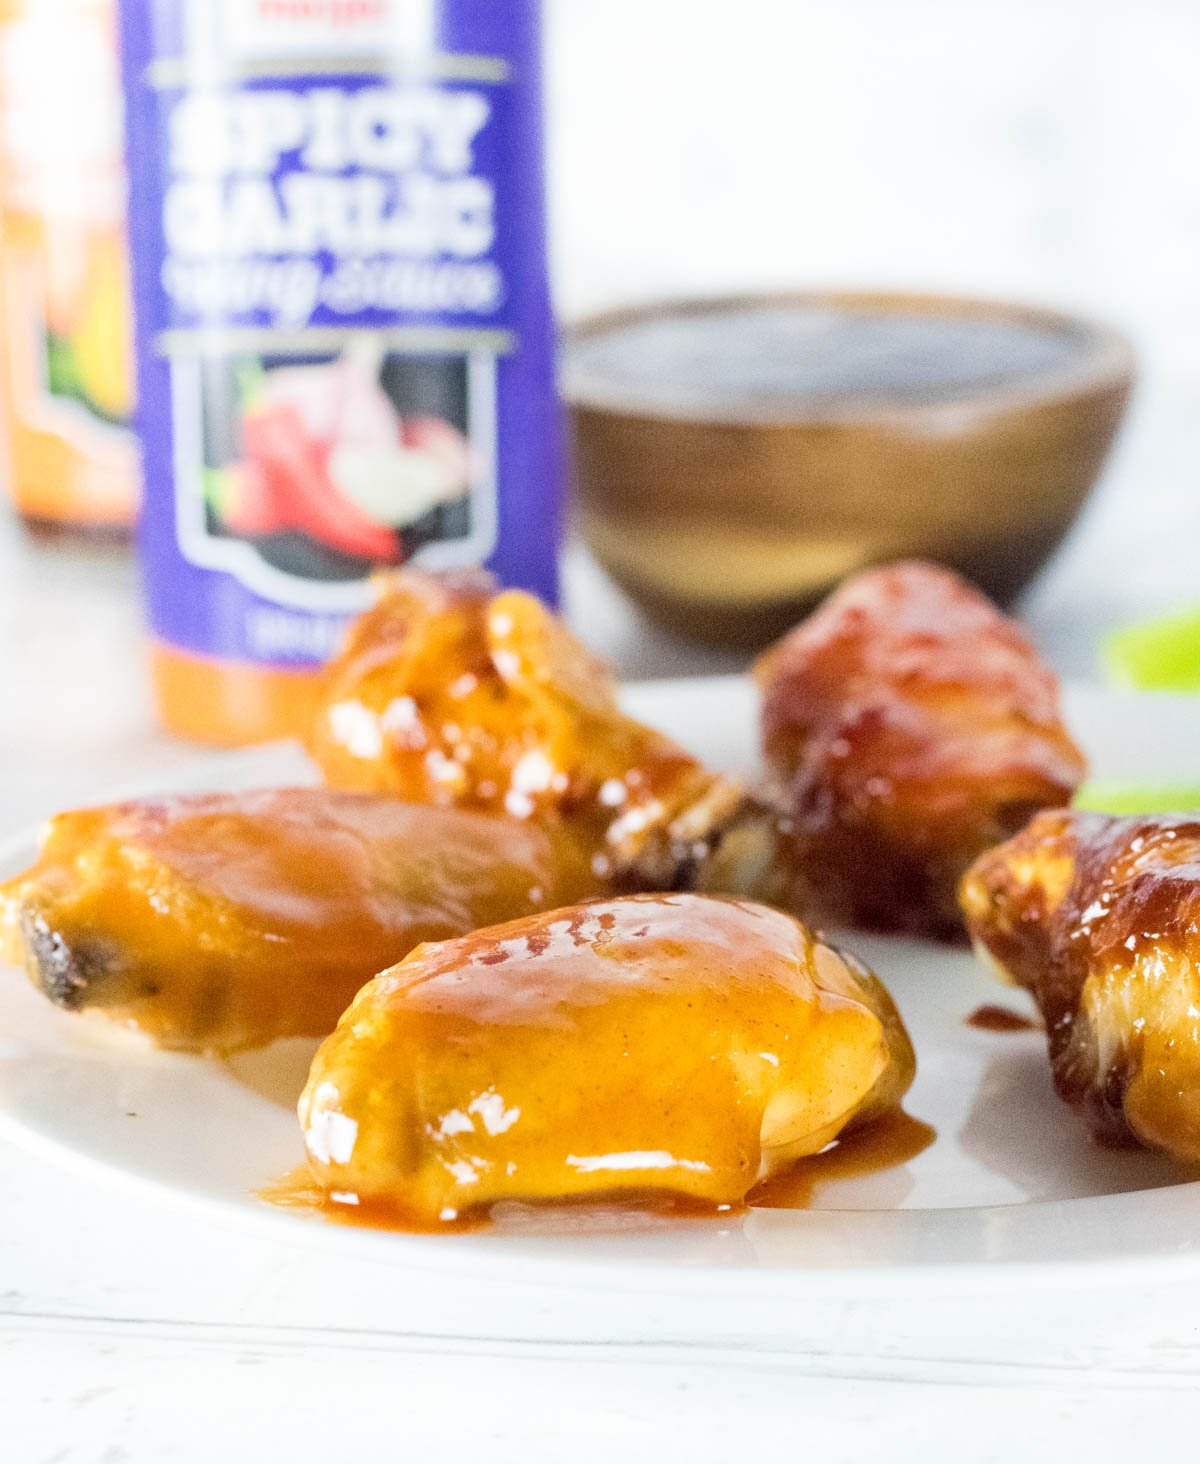 Sauced Chicken Wings with sauce bottle behind.